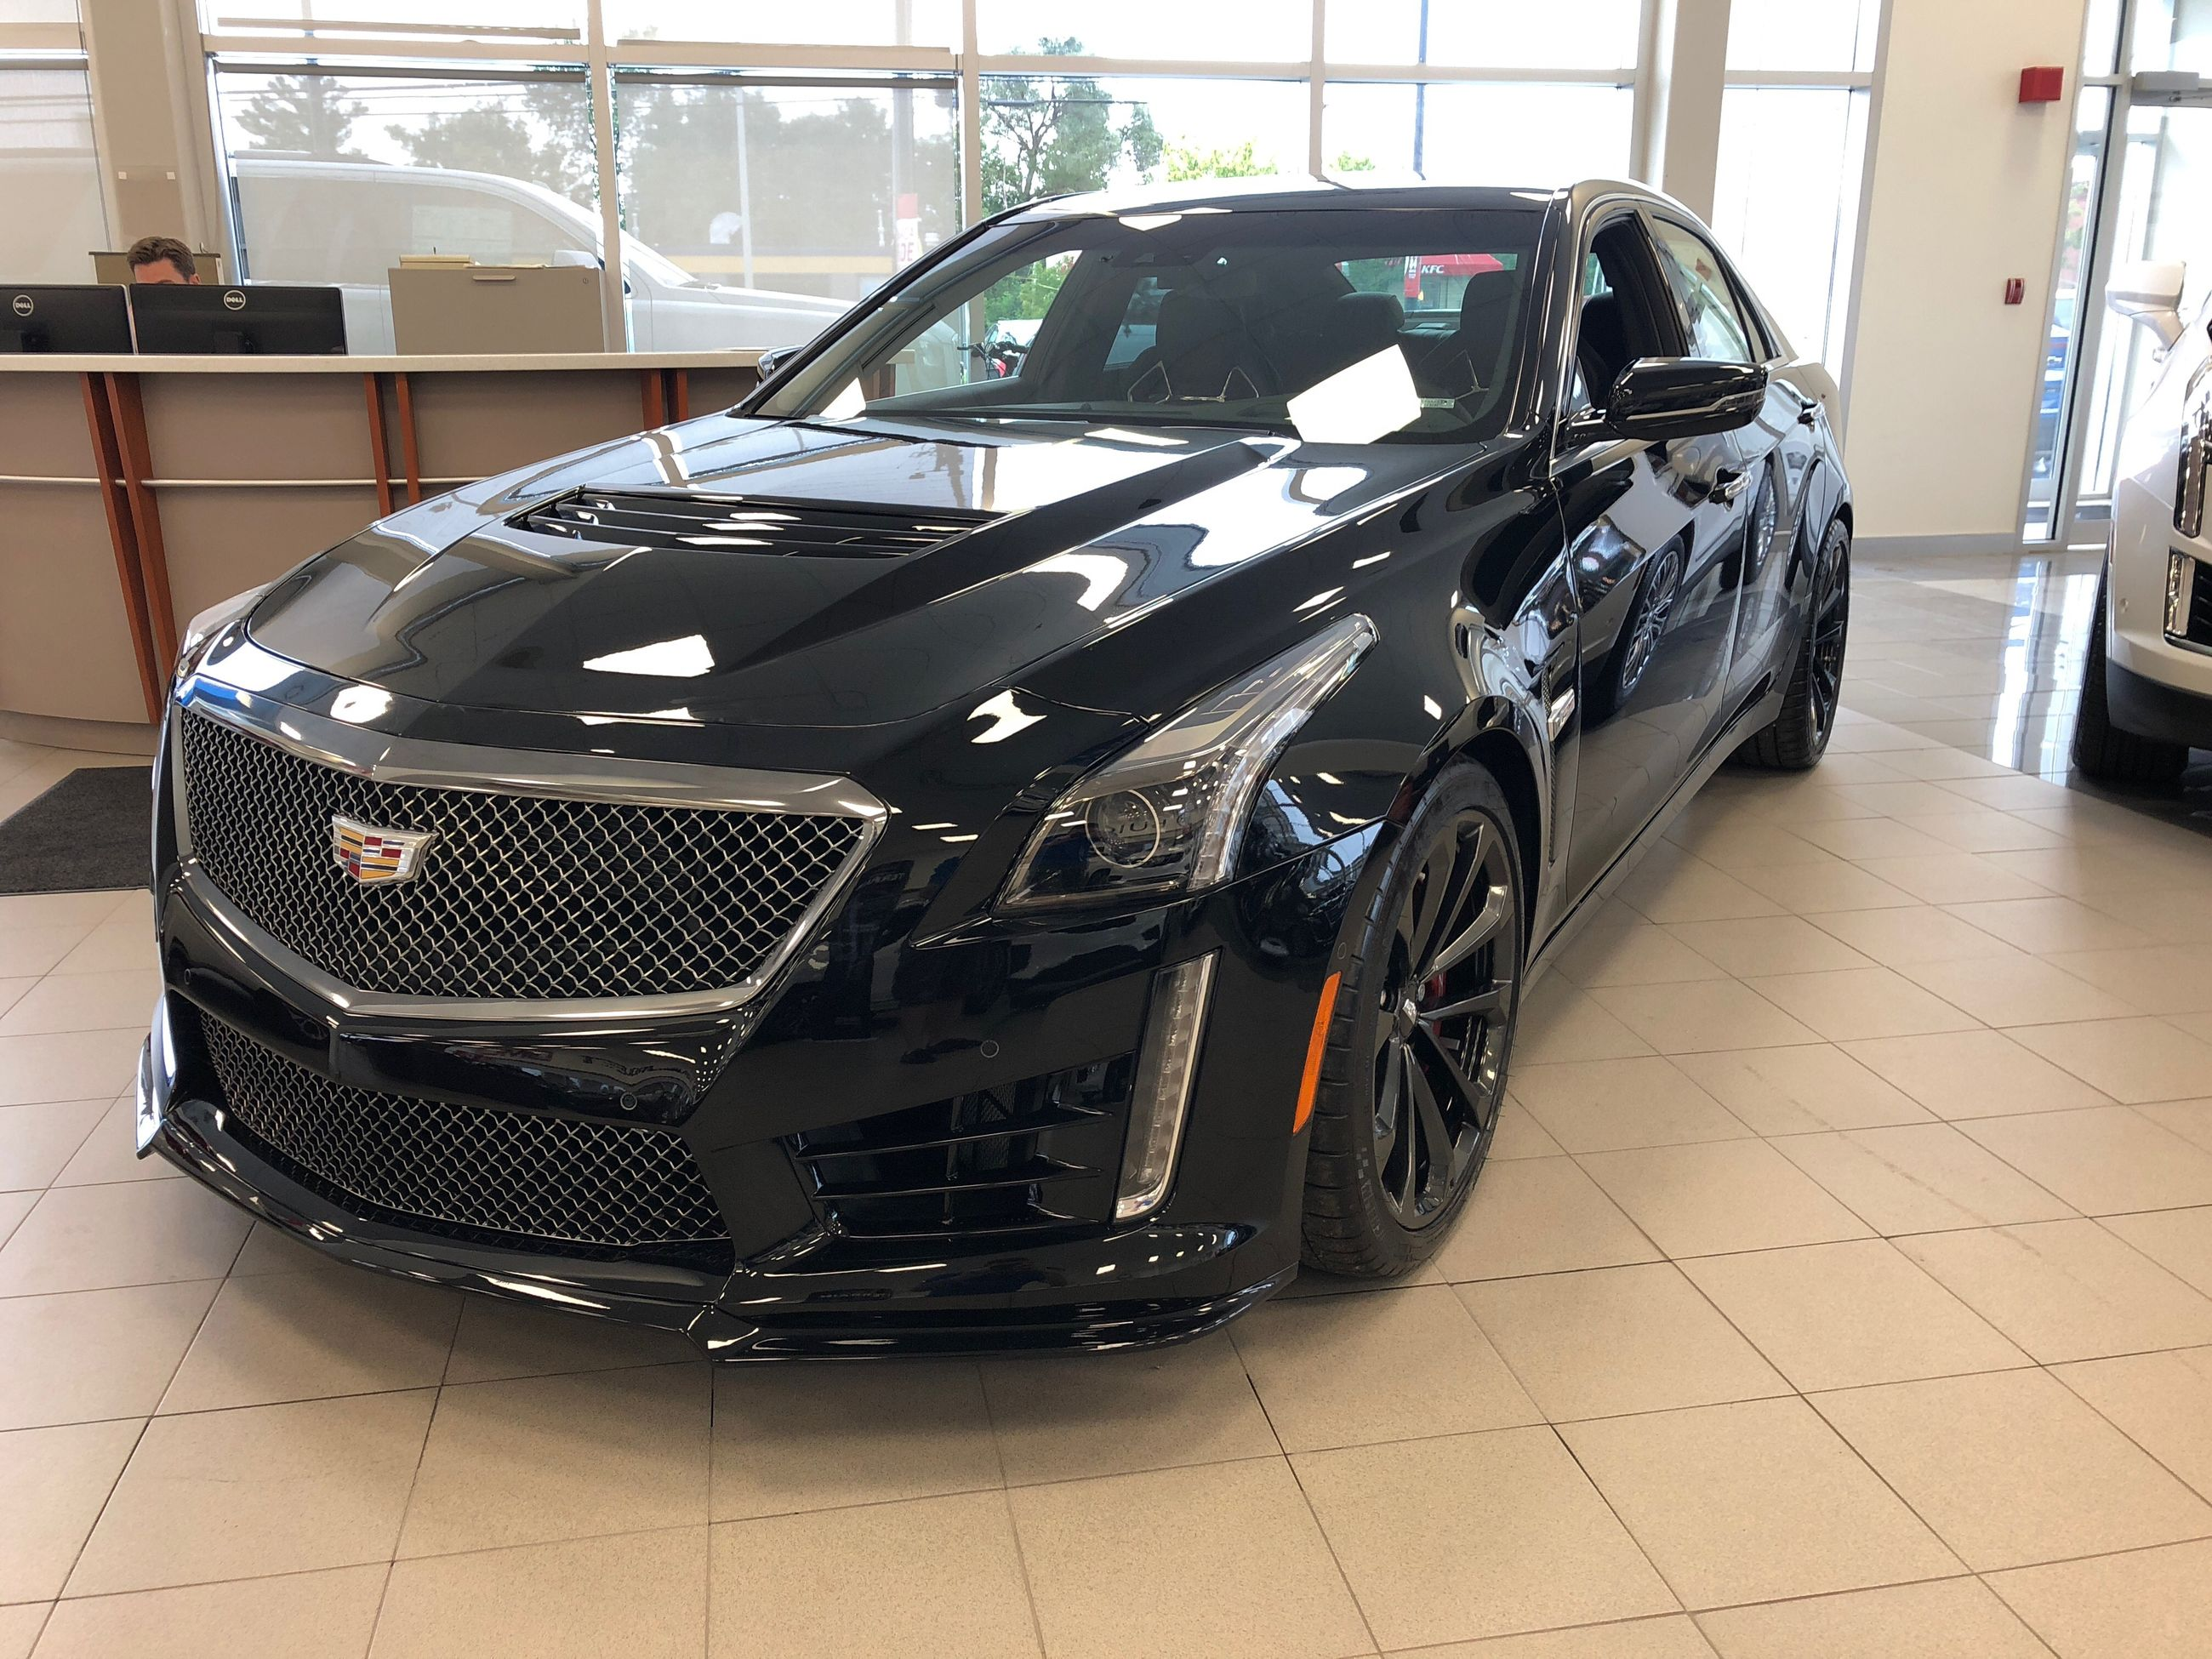 Used Cadillac Cts V For Sale >> New 2019 Cadillac CTS-V CTS-V for Sale - $103275.0 ...